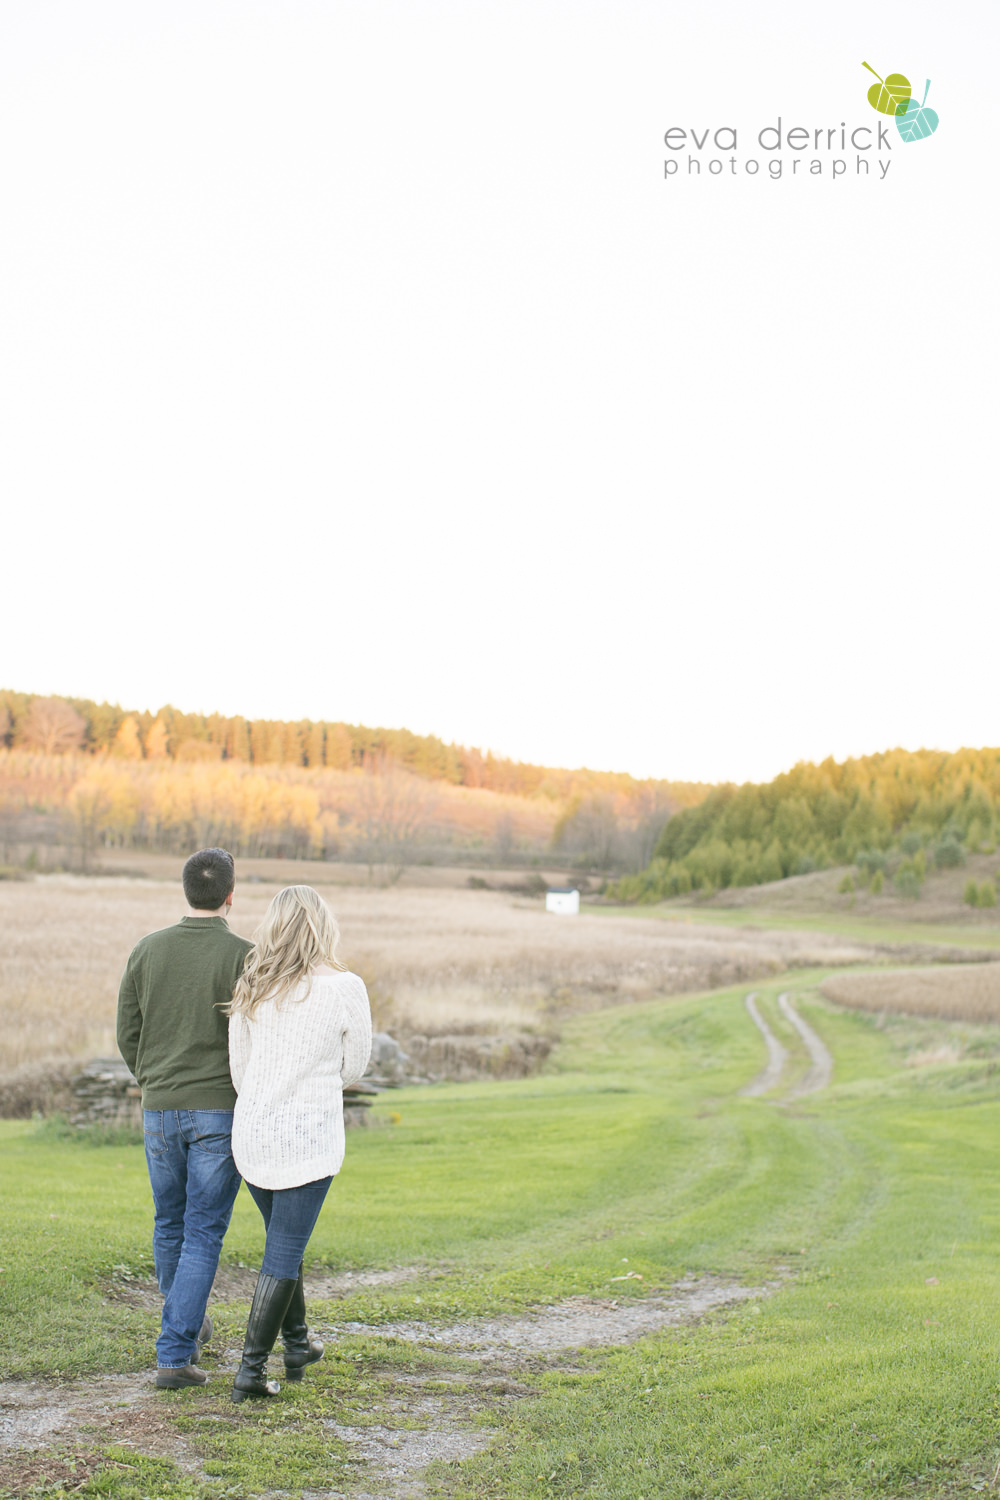 Albion-Hills-Photographer-Engagement-Session-Alanna-Matt-photography-by-Eva-Derrick-Photography-021.JPG